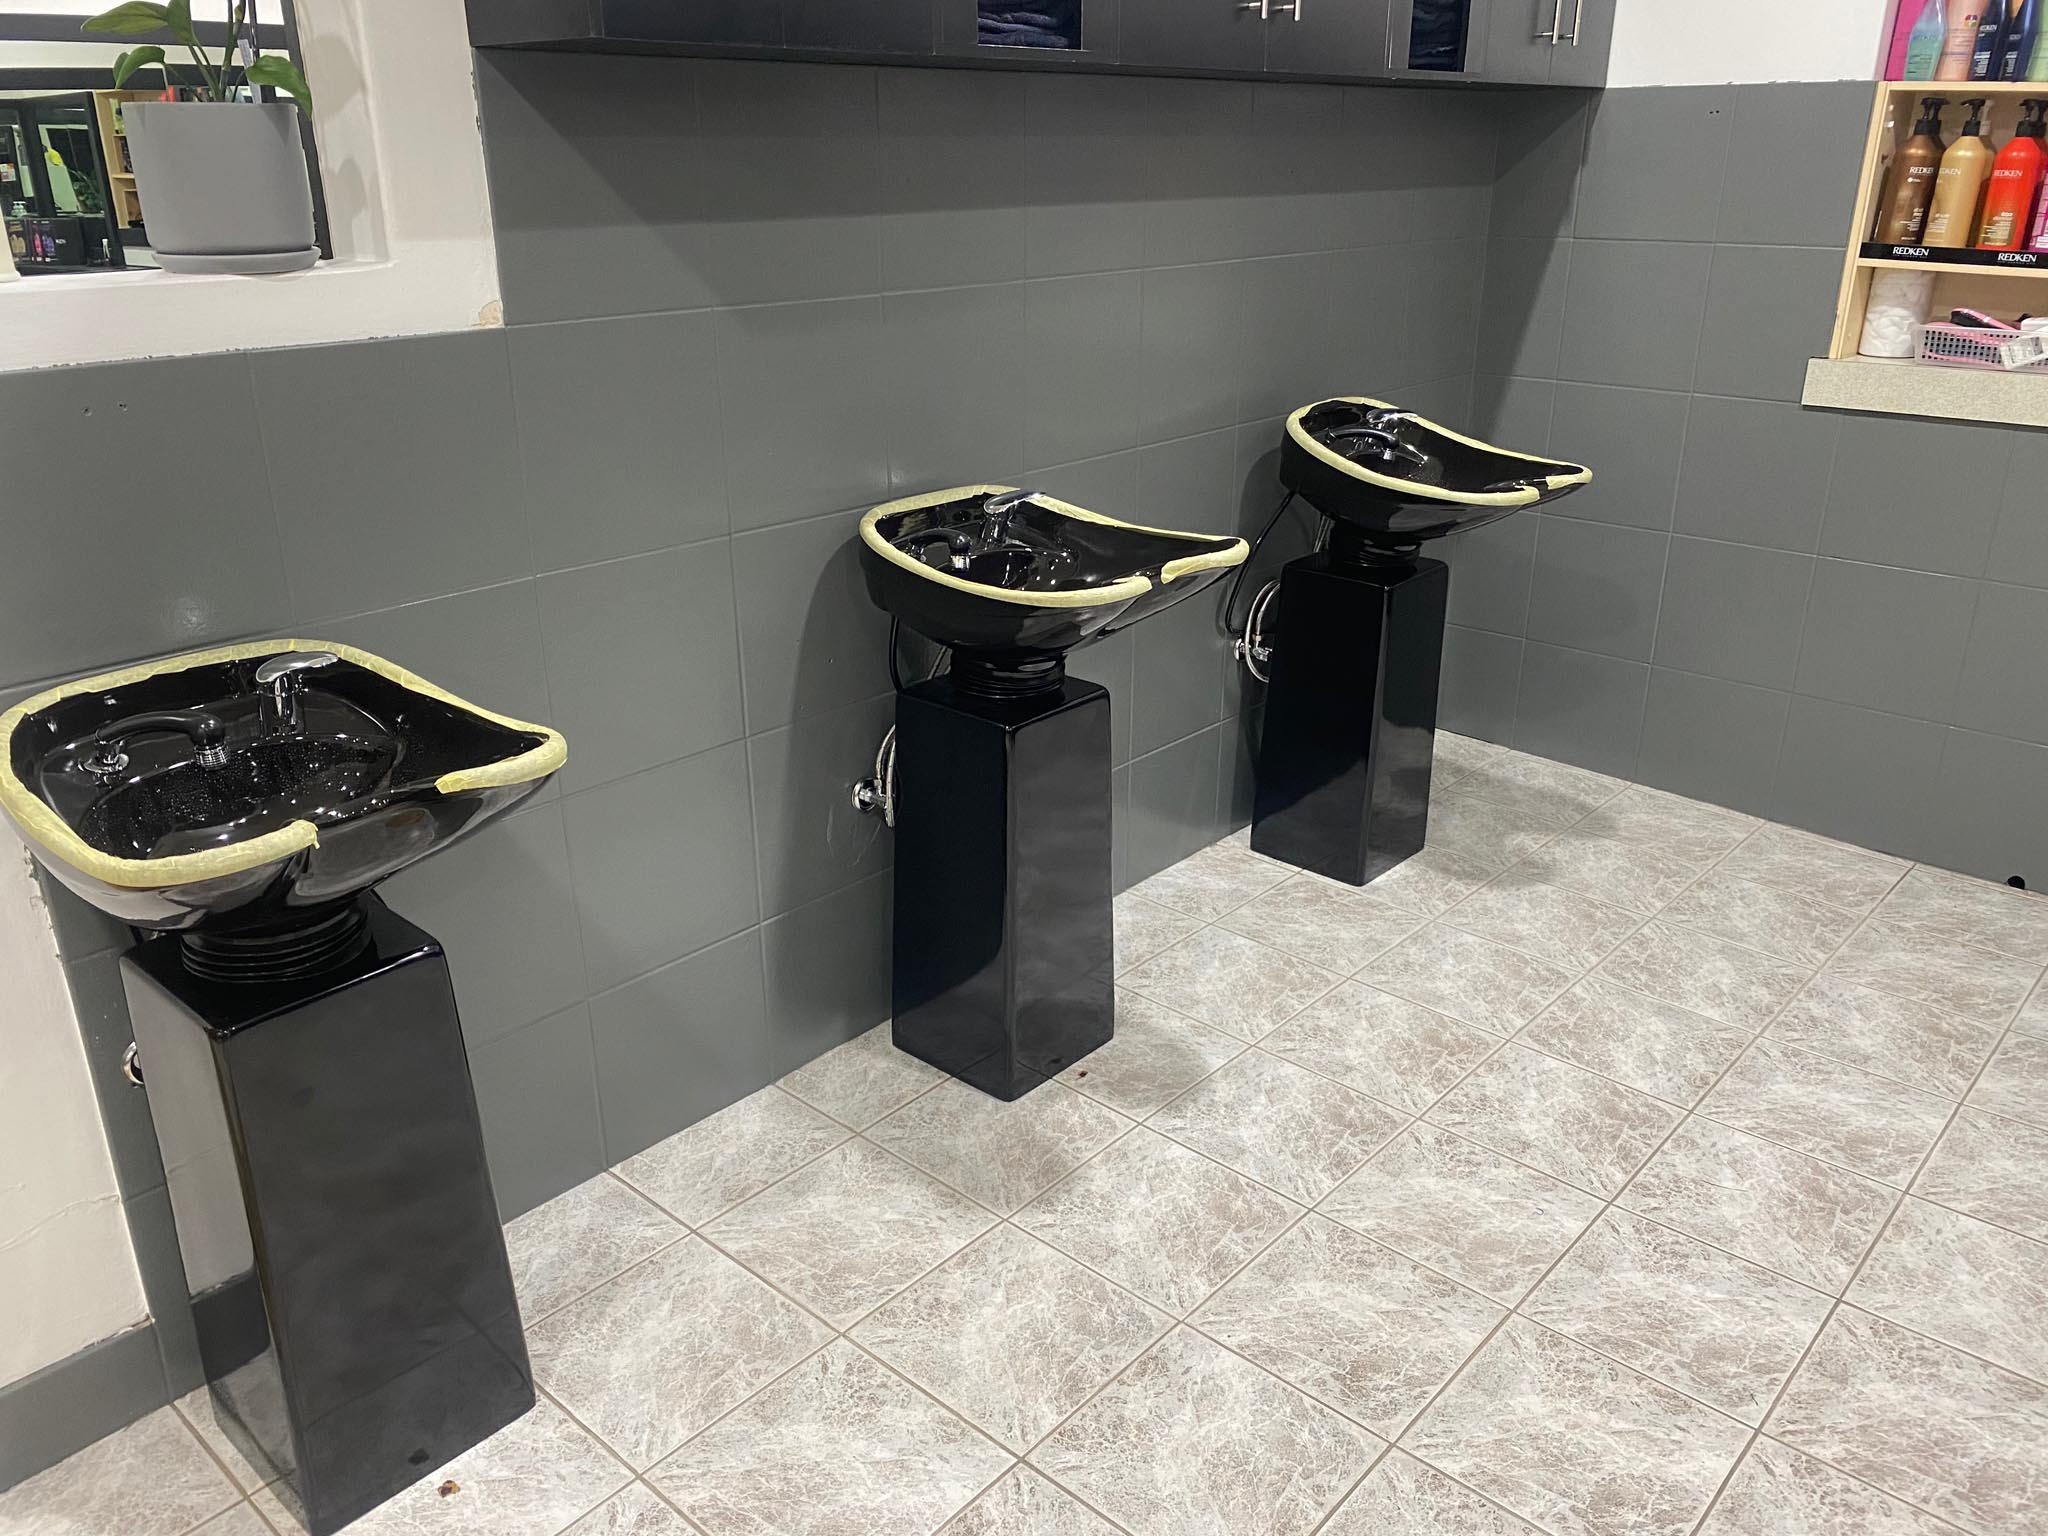 hairdresser upgrade plumber in Griffith NSW